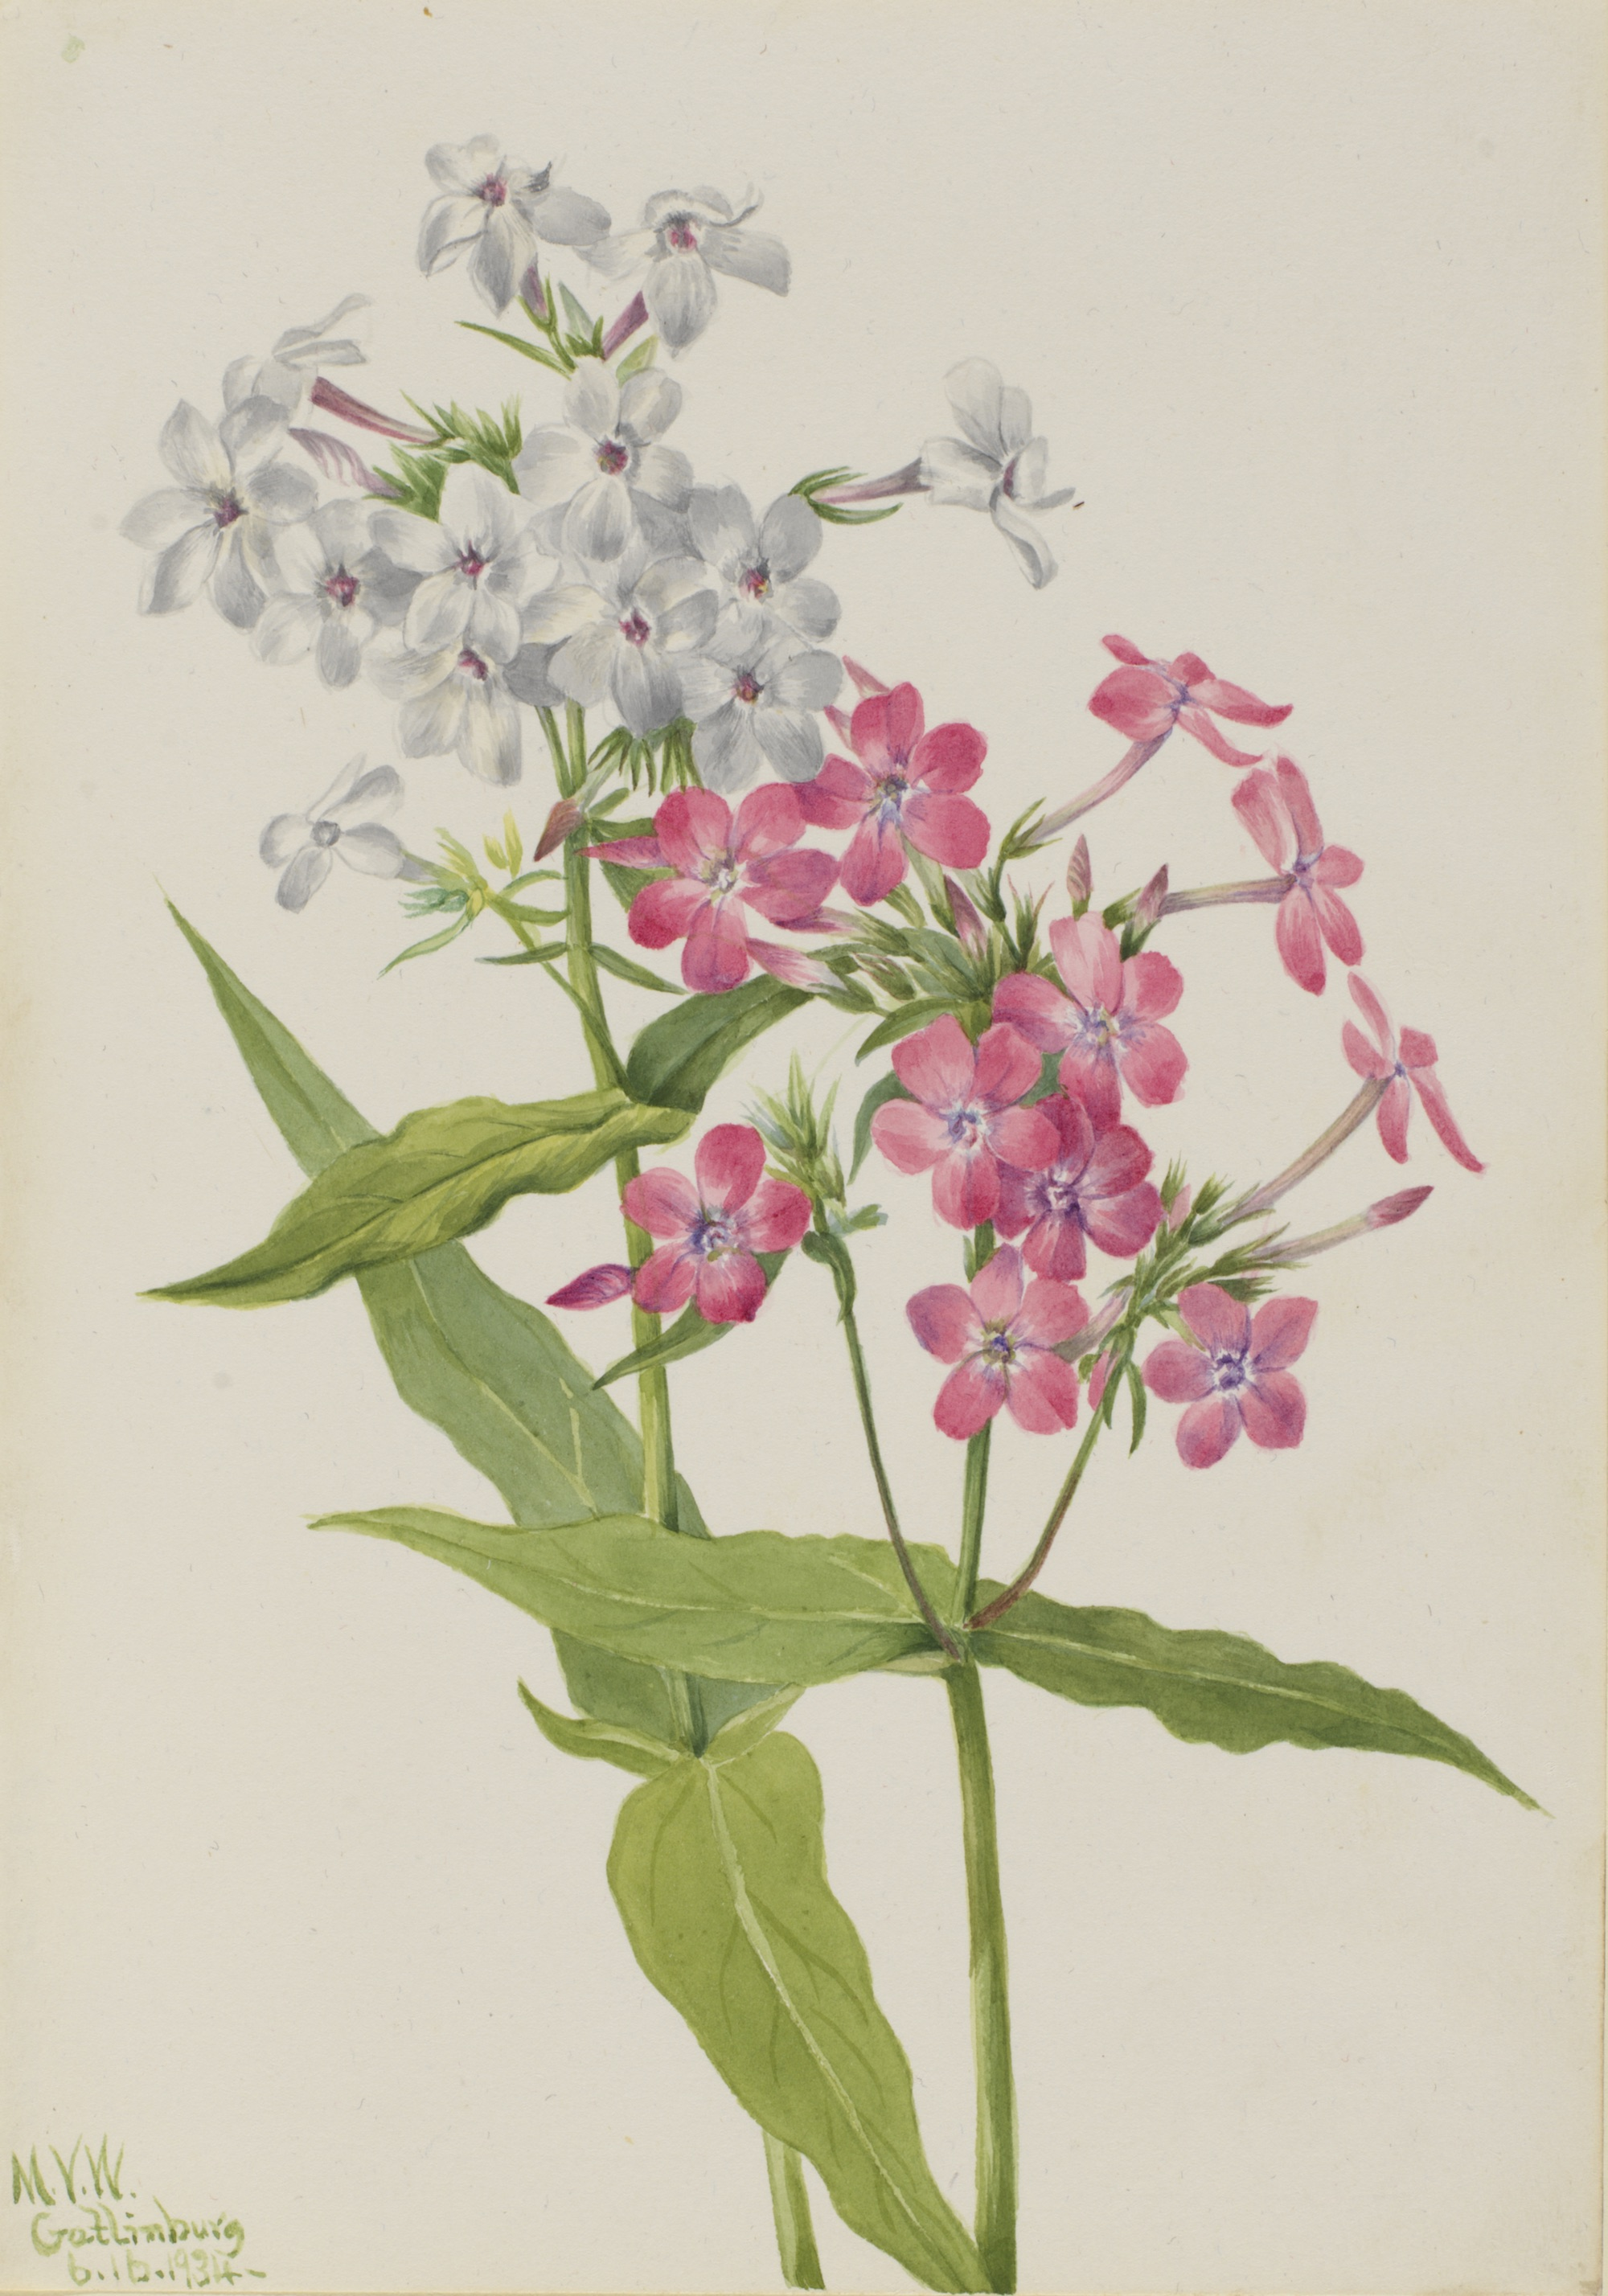 1934 Phlox paniculata illustration by Mary Vaux Walcott.